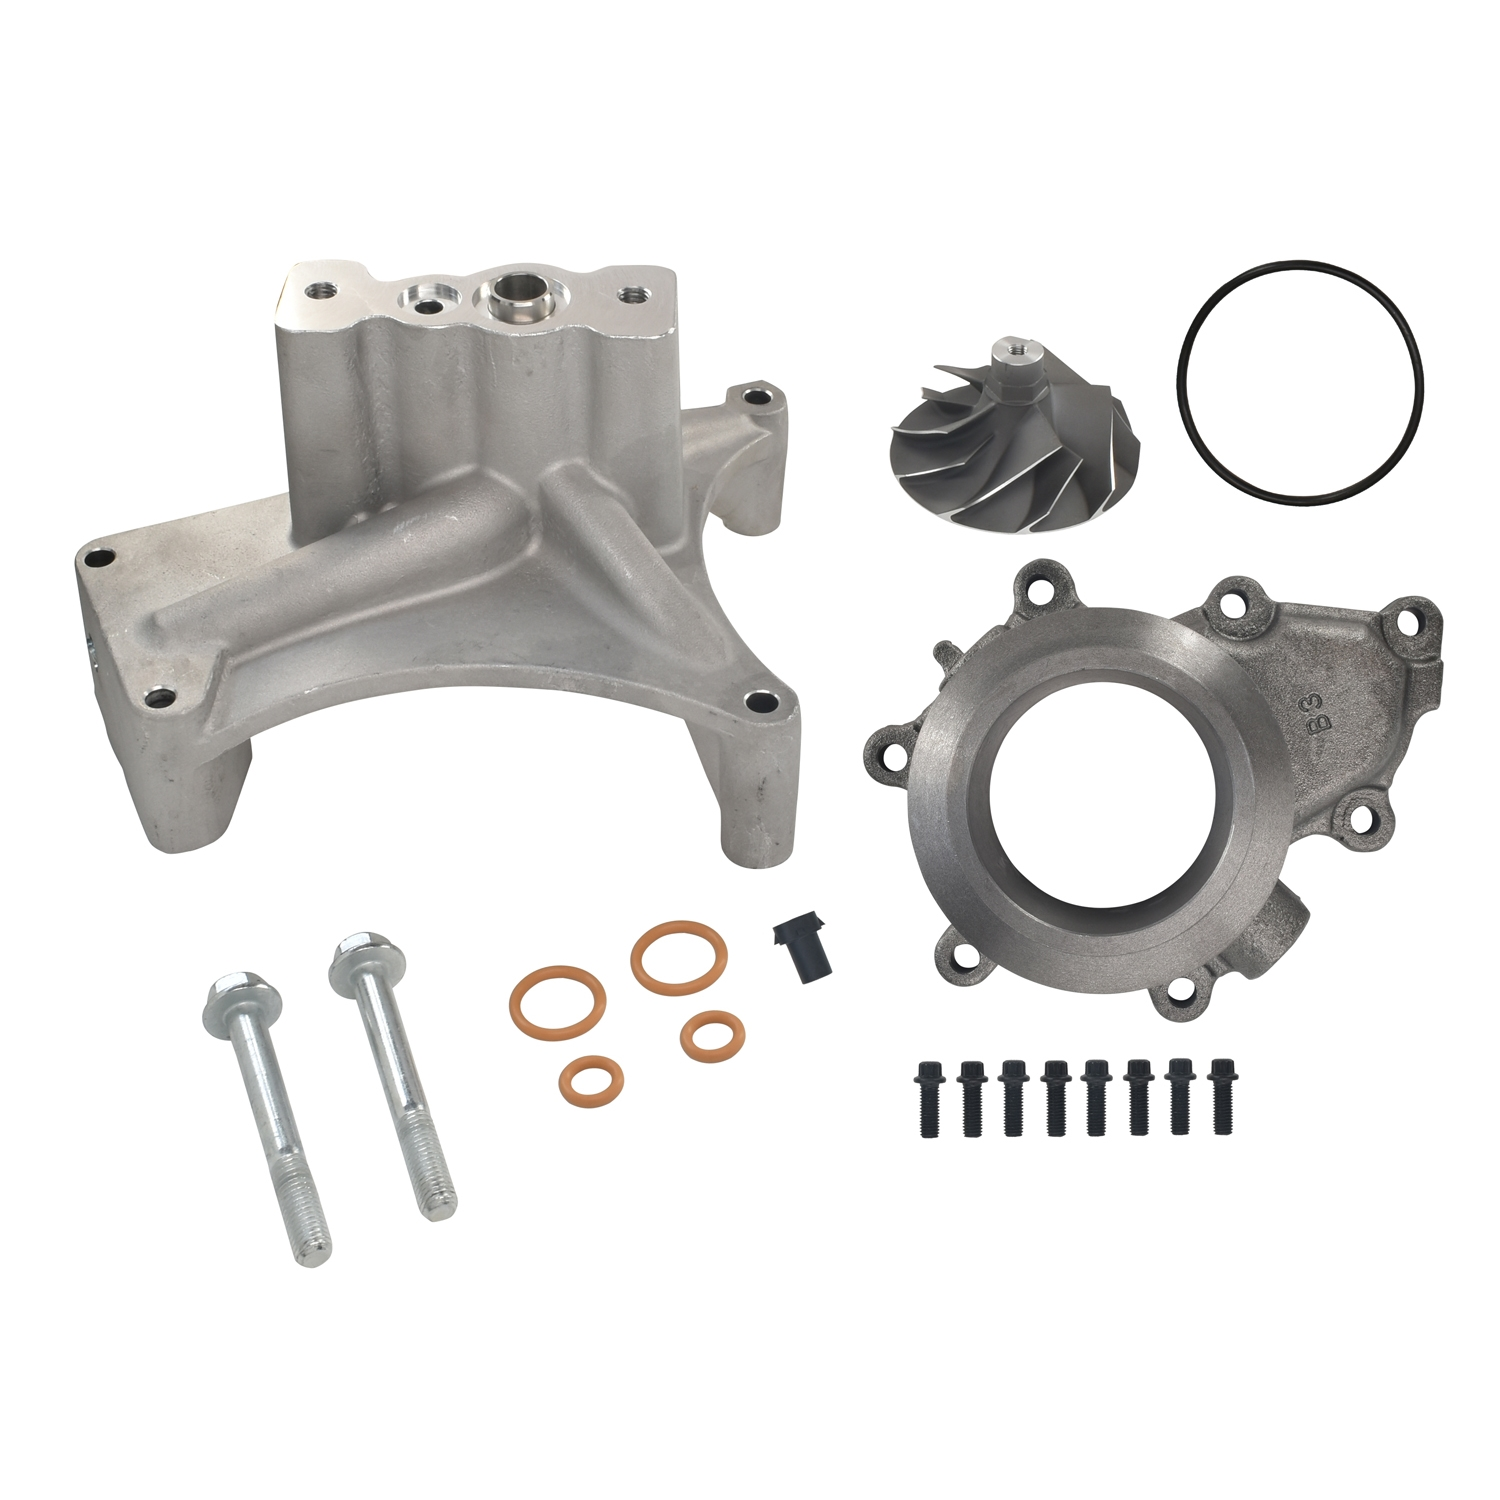 GTP38 Turbocharger Pedestal EBP Delete Kit 5+5 Cast Compressor Wheel For 99.5-03 7.3L Ford Powerstroke Diesel